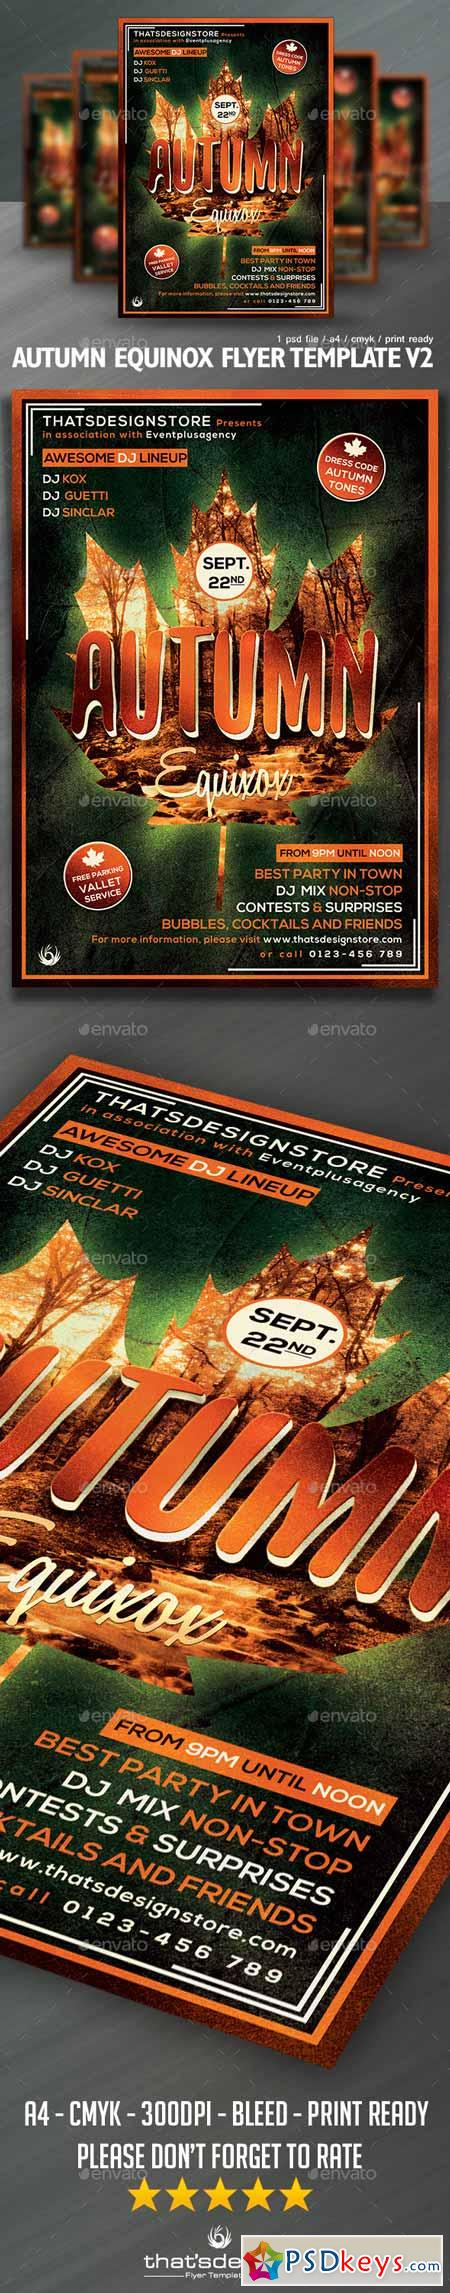 Autumn Equinox Flyer Template V2 12805061